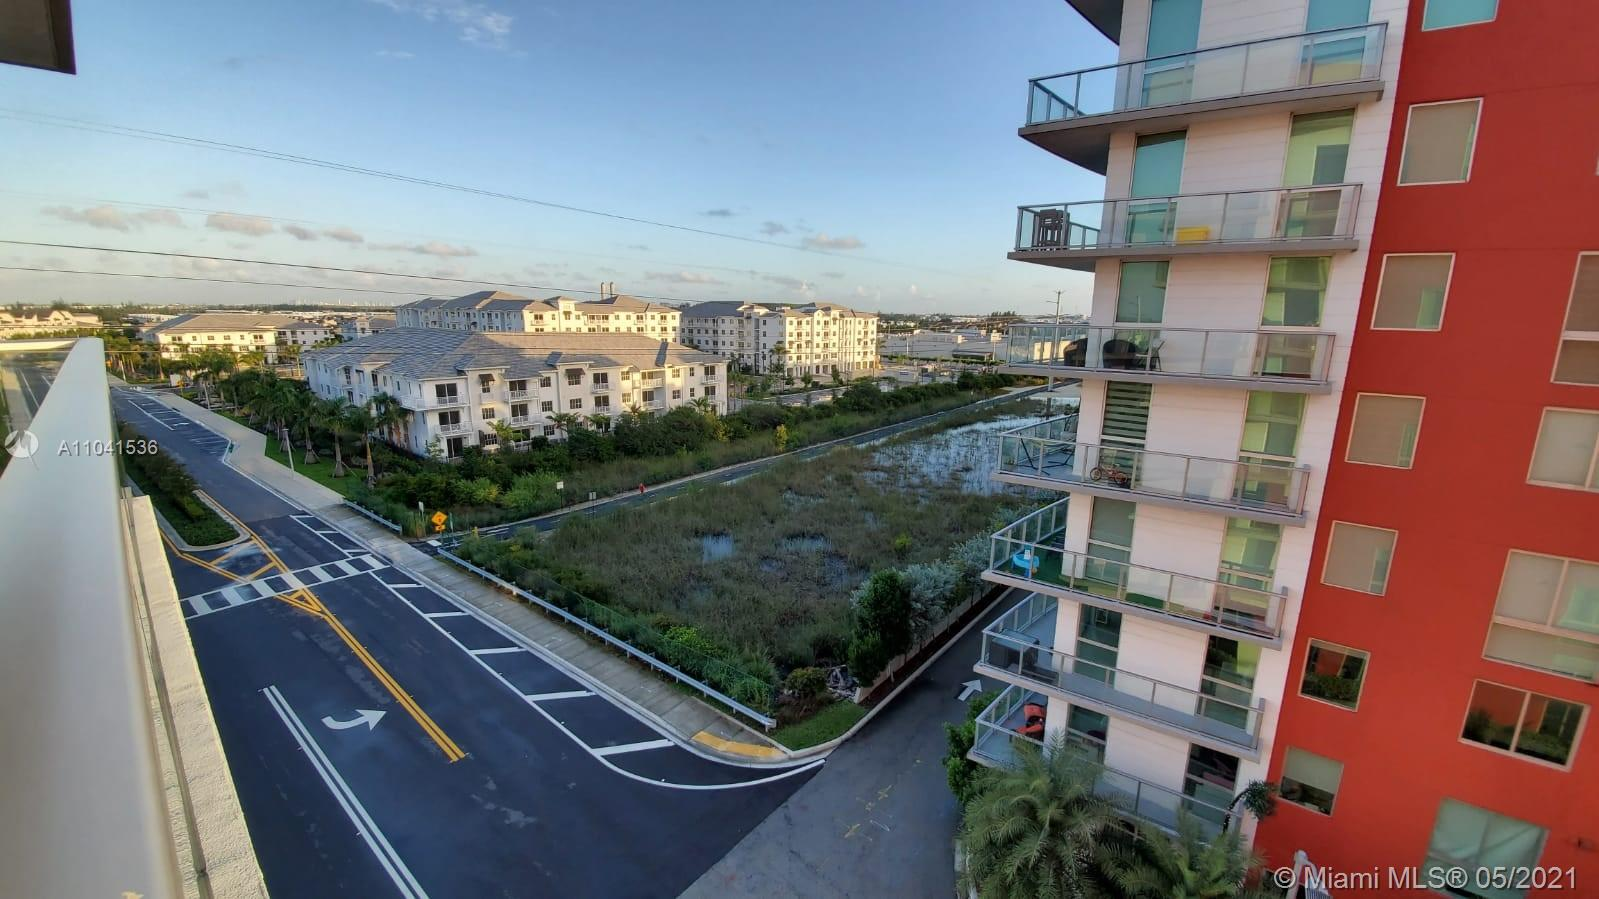 Midtown Doral - Building 3 #604 - 7825 NW 107th Ave #604, Doral, FL 33178